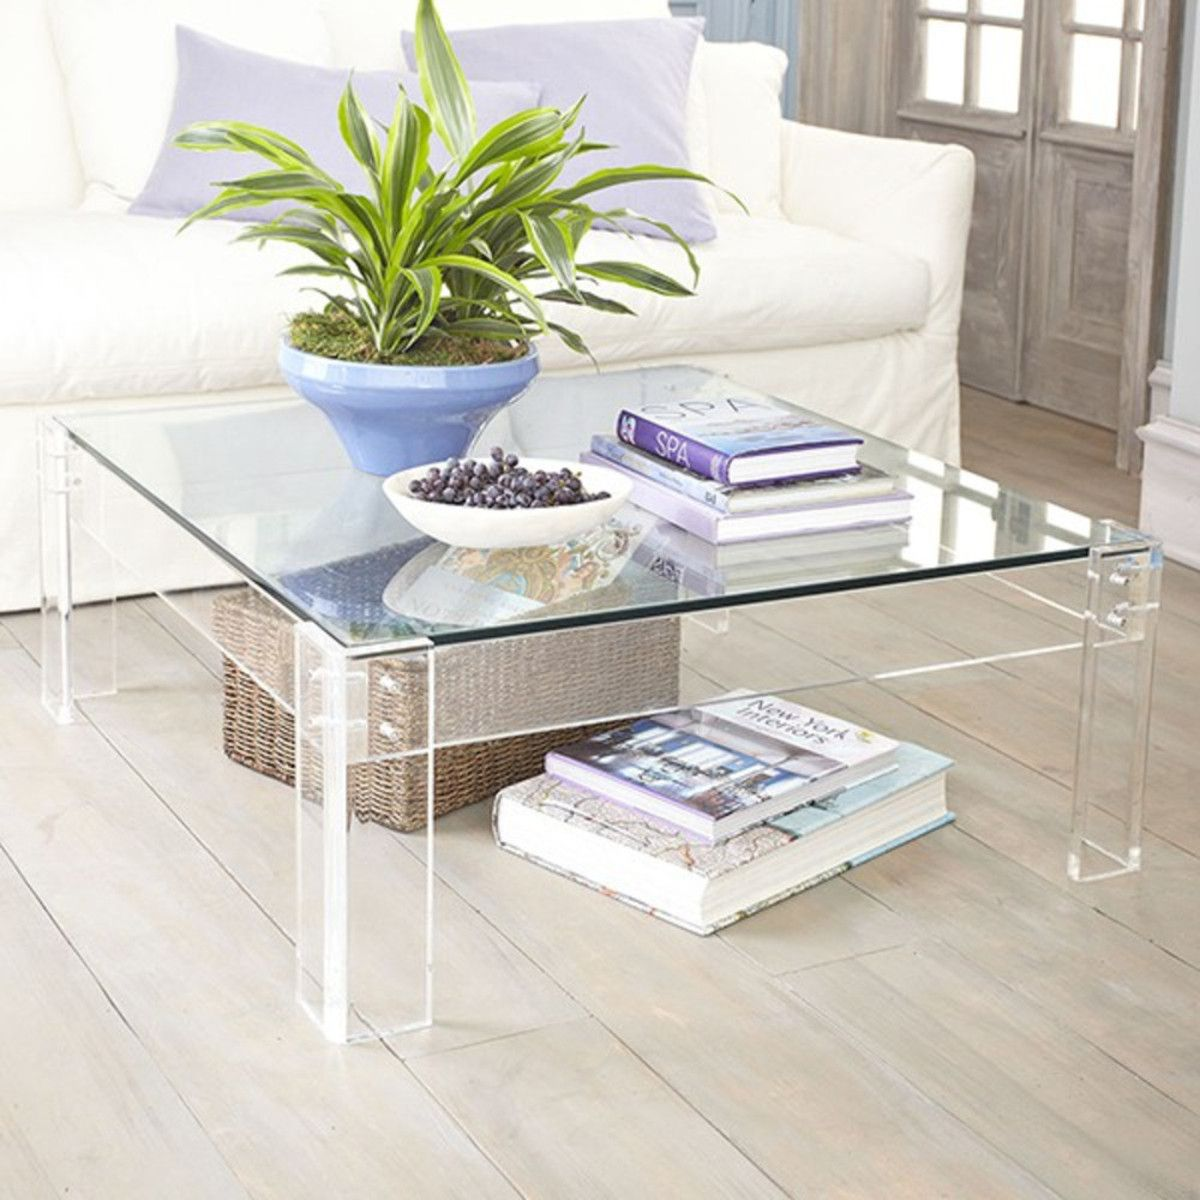 Disappearing Coffee Table Transparent Coffee Tables Wisteria With Images Modern Glass Coffee Table Acrylic Coffee Table Coffee Table Square